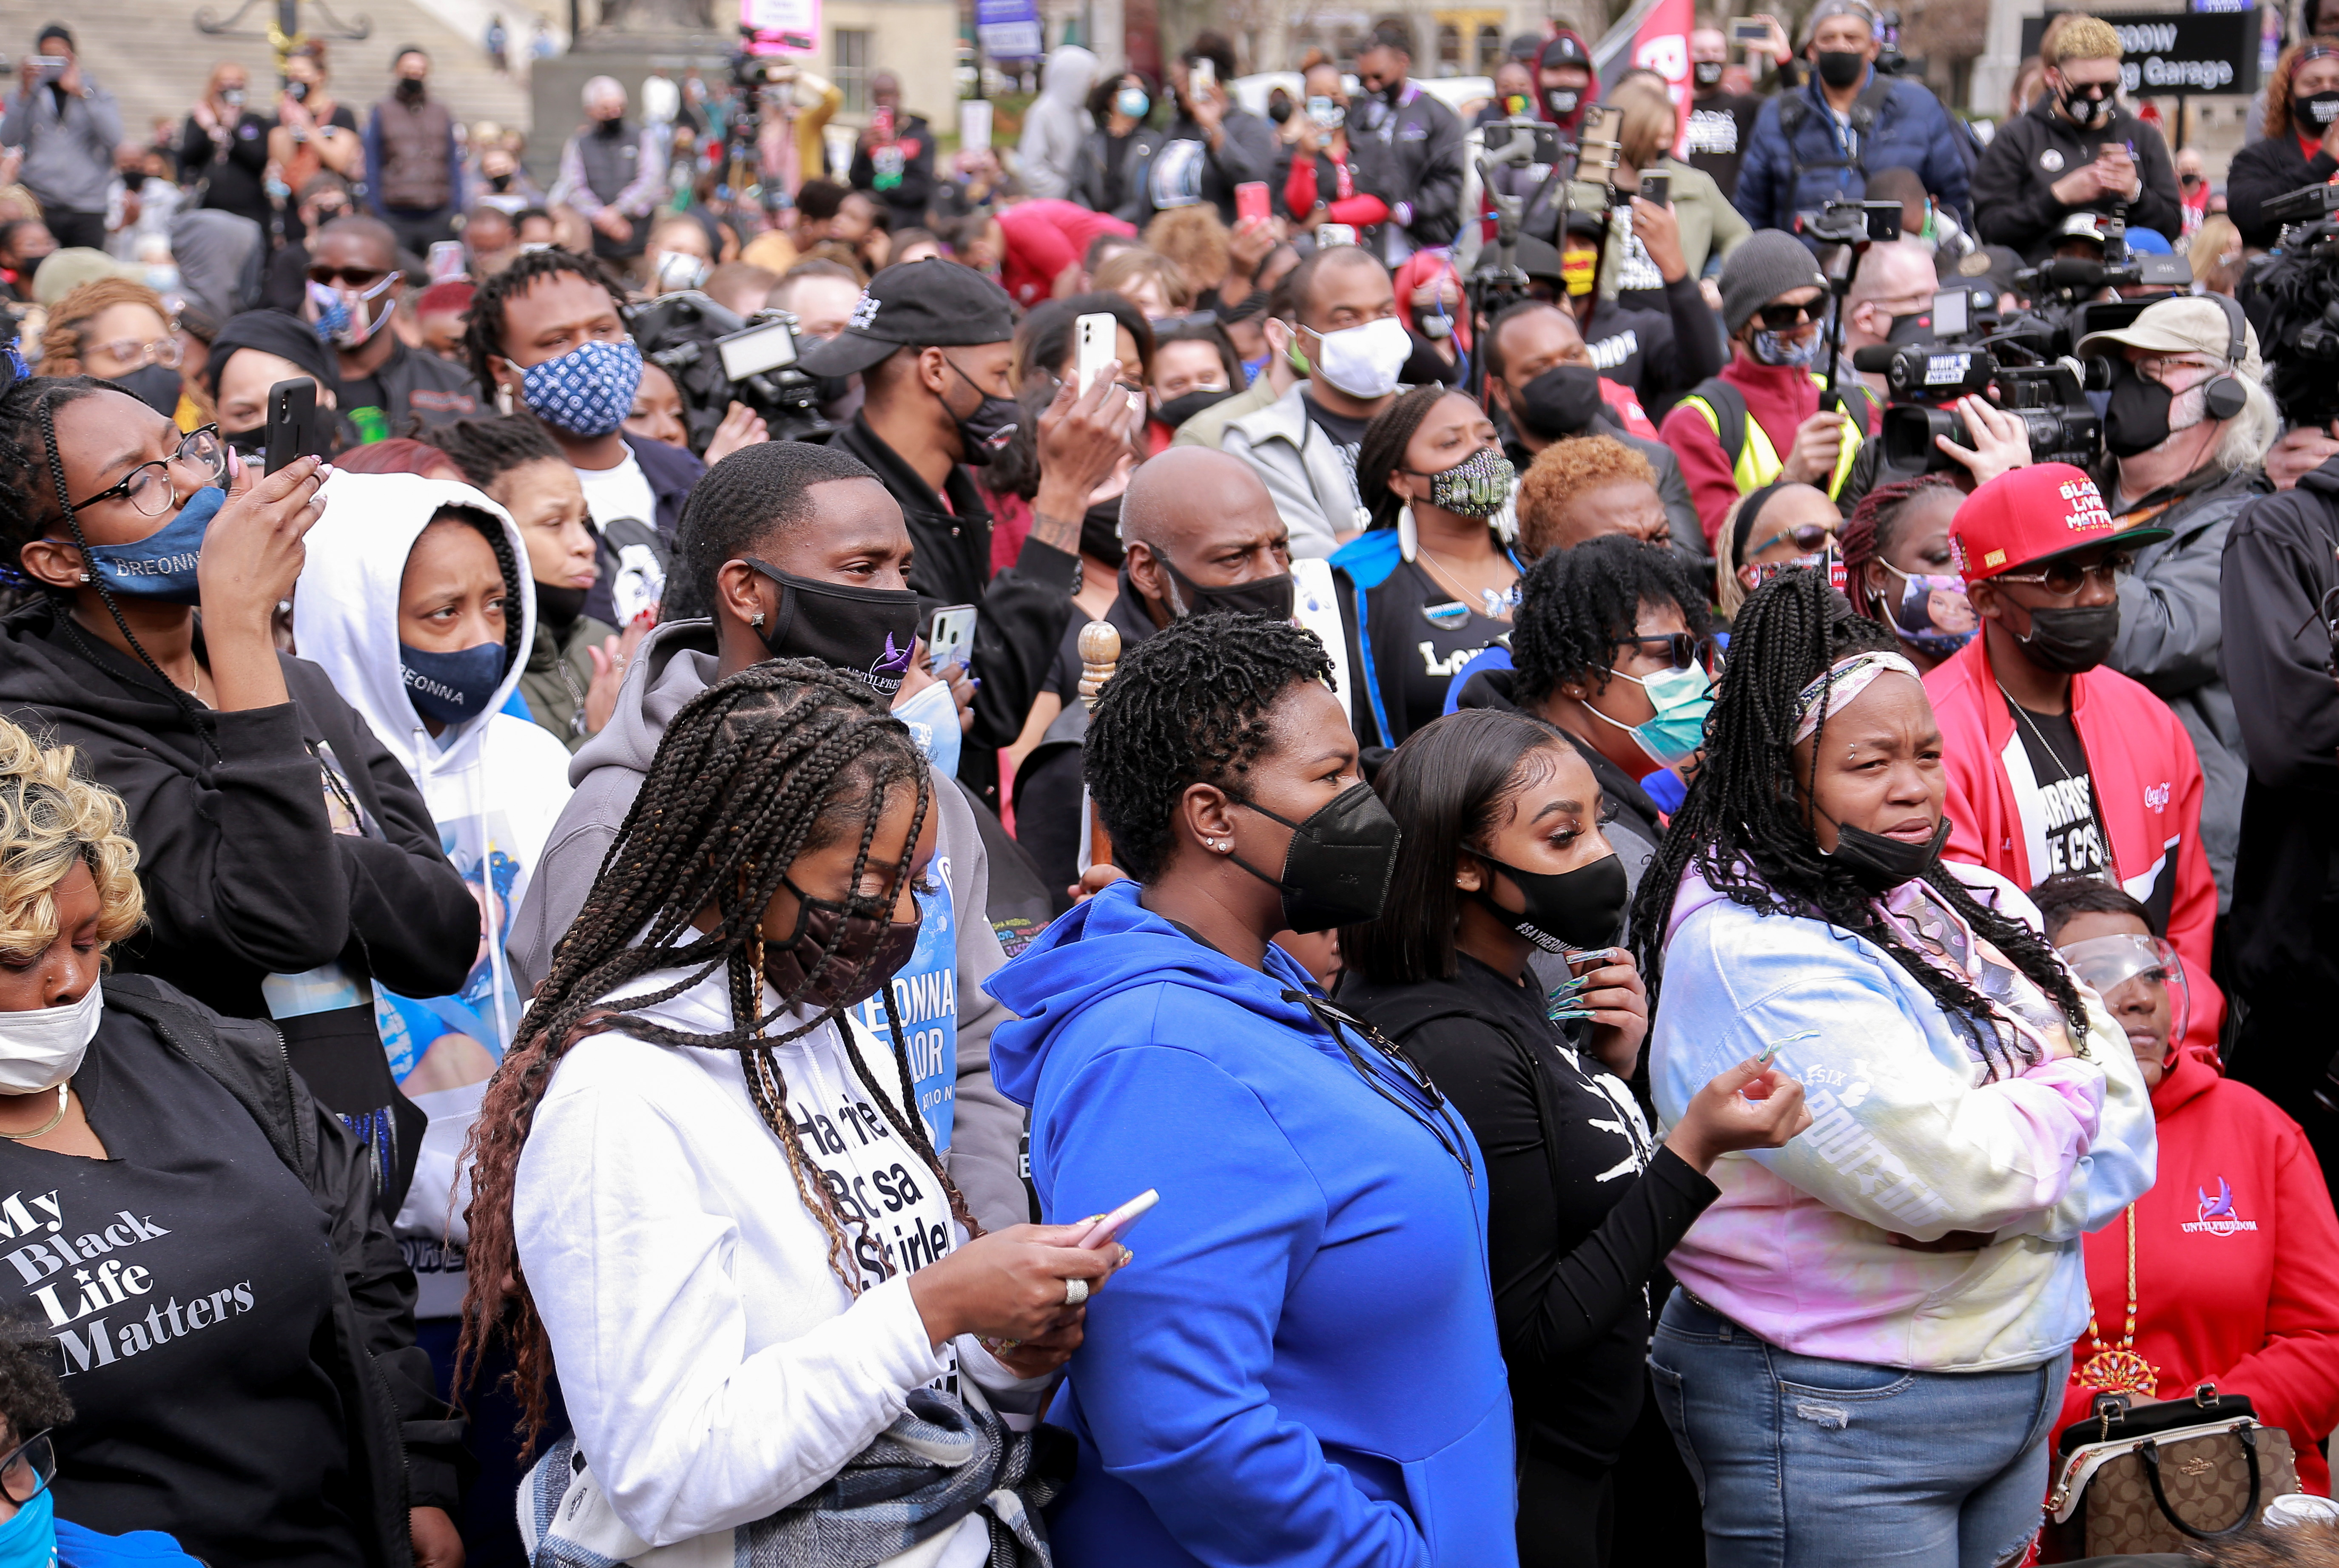 People attend a rally to mark one year since police officers shot and killed Breonna Taylor when they entered her home, in Louisville, Kentucky, U.S., March 13, 2021. REUTERS/Amira Karaoud